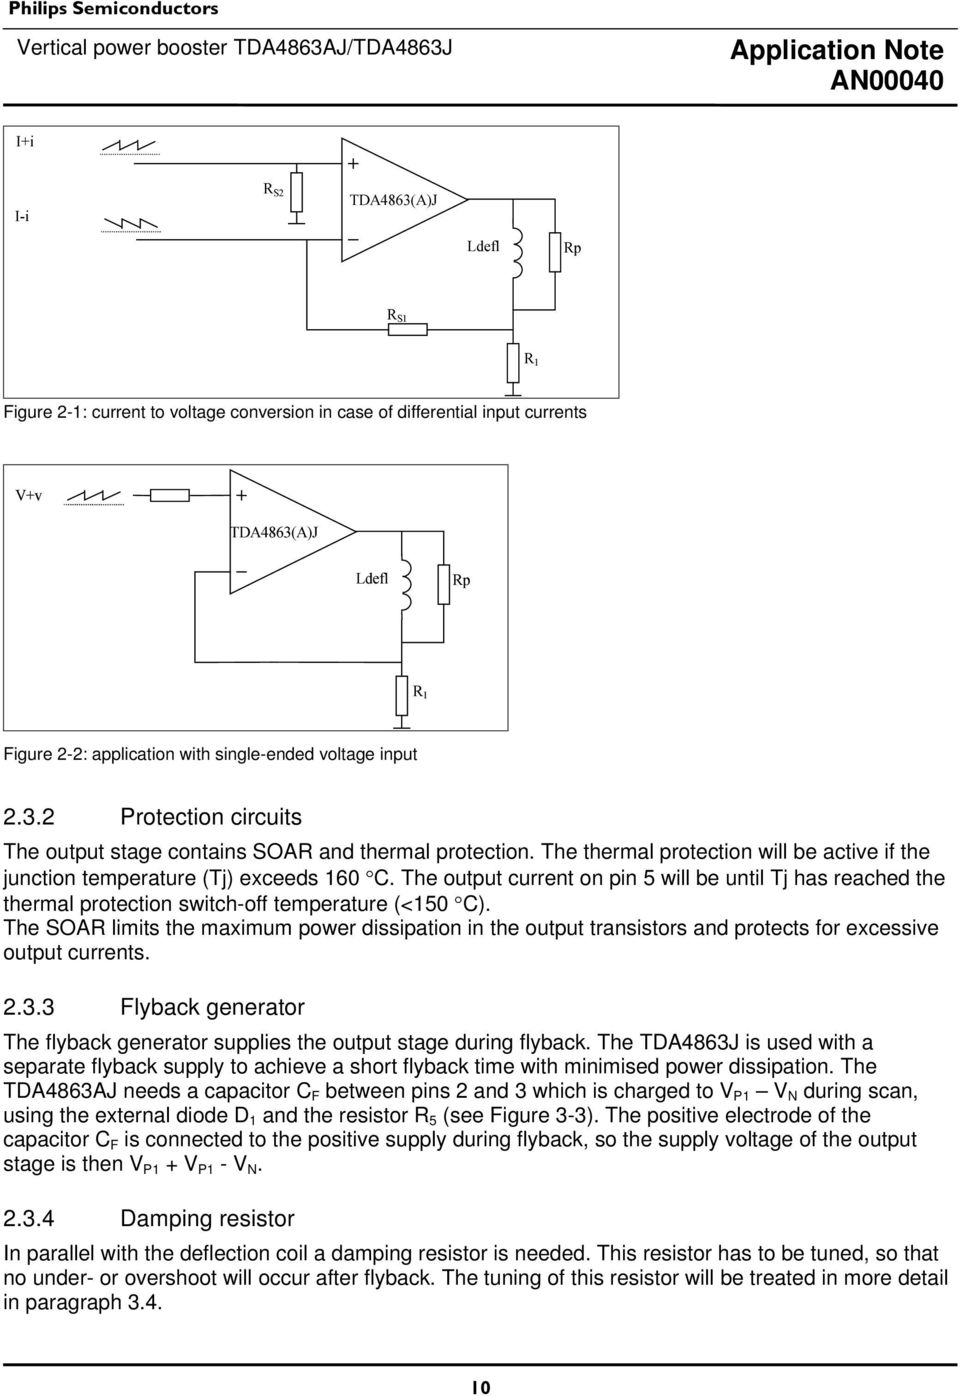 Vertical Power Booster Tda4863aj Tda4863j Pdf Simple Currenttovoltage Converter Circuit Diagram Electronic Thermal Protection Switchoff Temperature 10 C The Soar Limits Maximum Dissipation